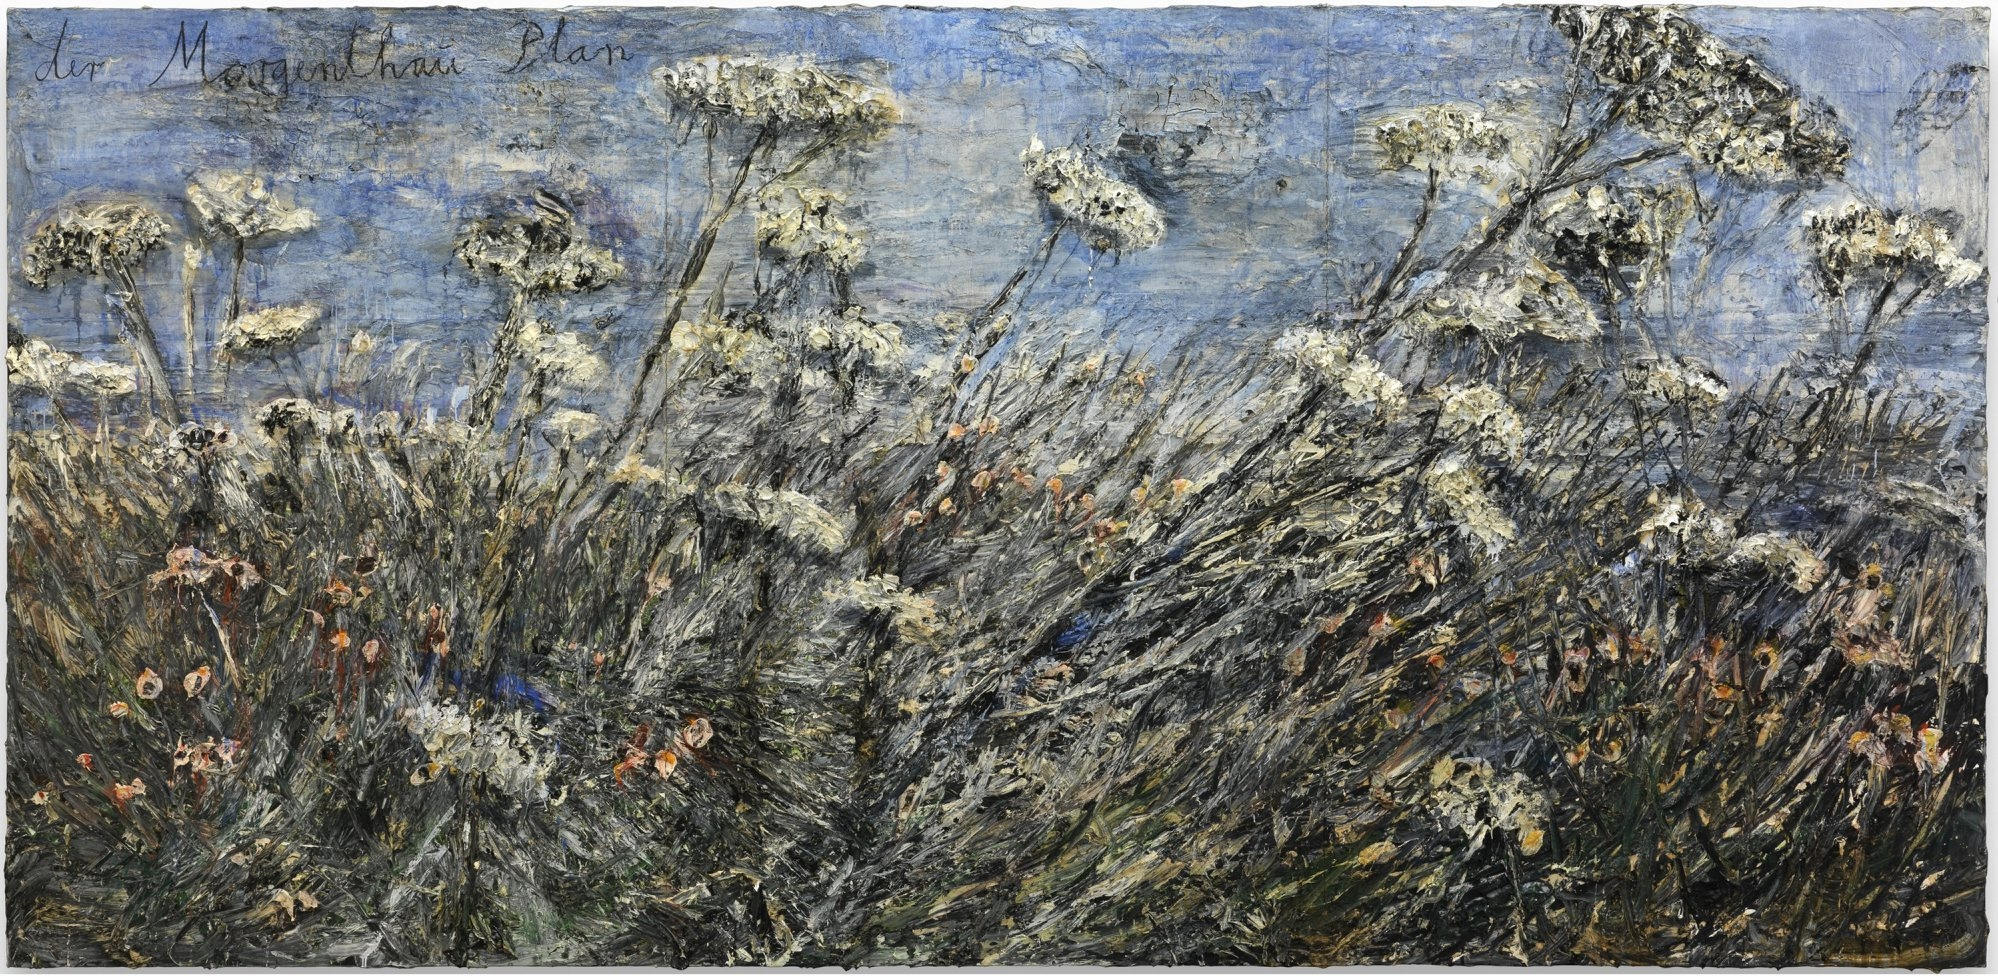 """The Albright-Knox Art Gallery will exhibit German-born painter Anselm Kiefer's large 2012 landscape """"der Morgenthau Plan,"""" which it recently acquired, in a yearlong exhibition opening Nov. 17."""